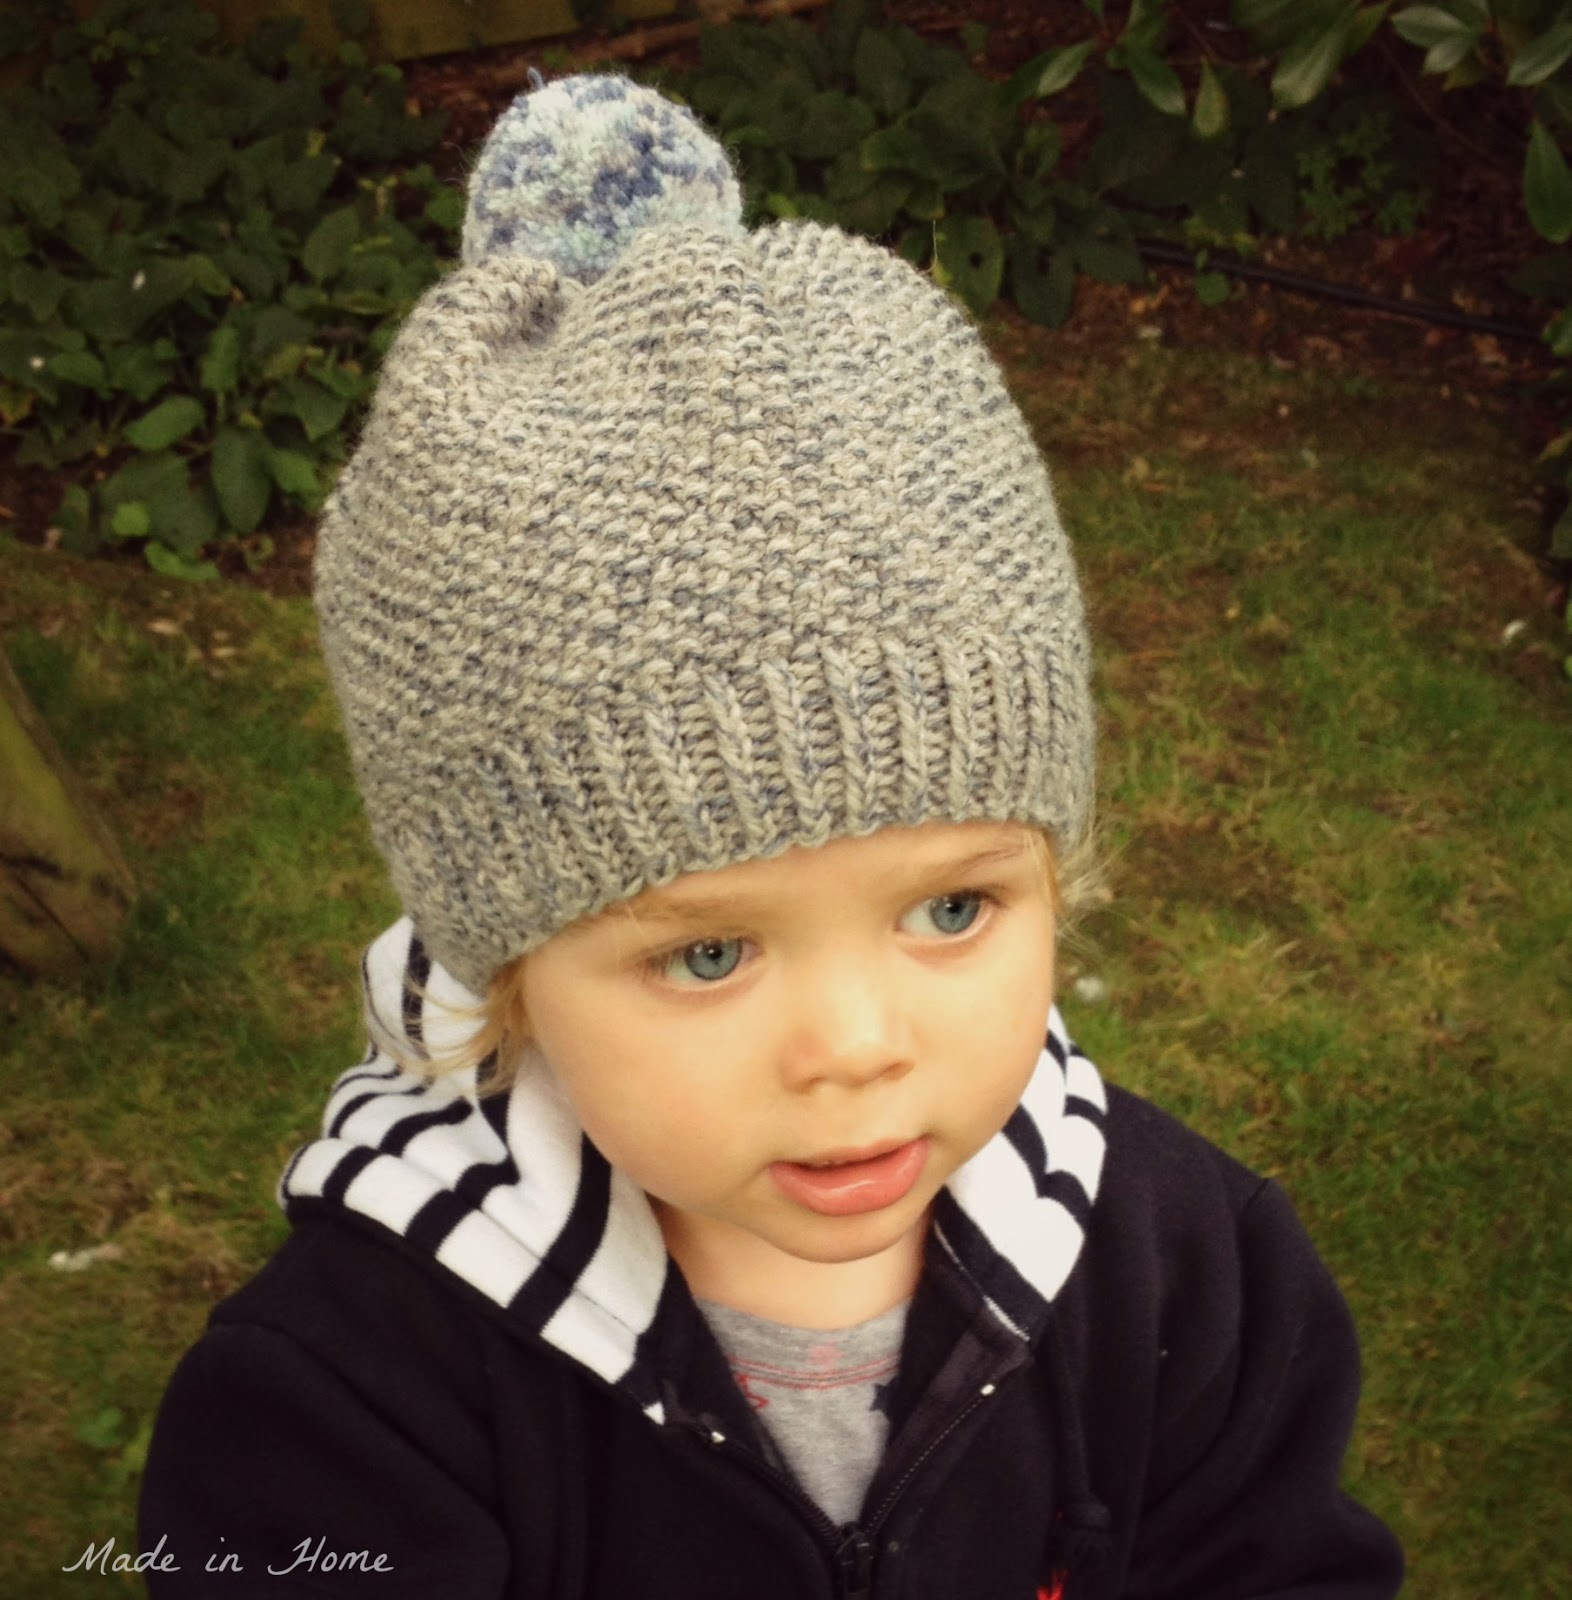 Tigger Knitting Pattern : Made in Home: Toddler Pompom Beanie Hat A free pattern {Knitting}